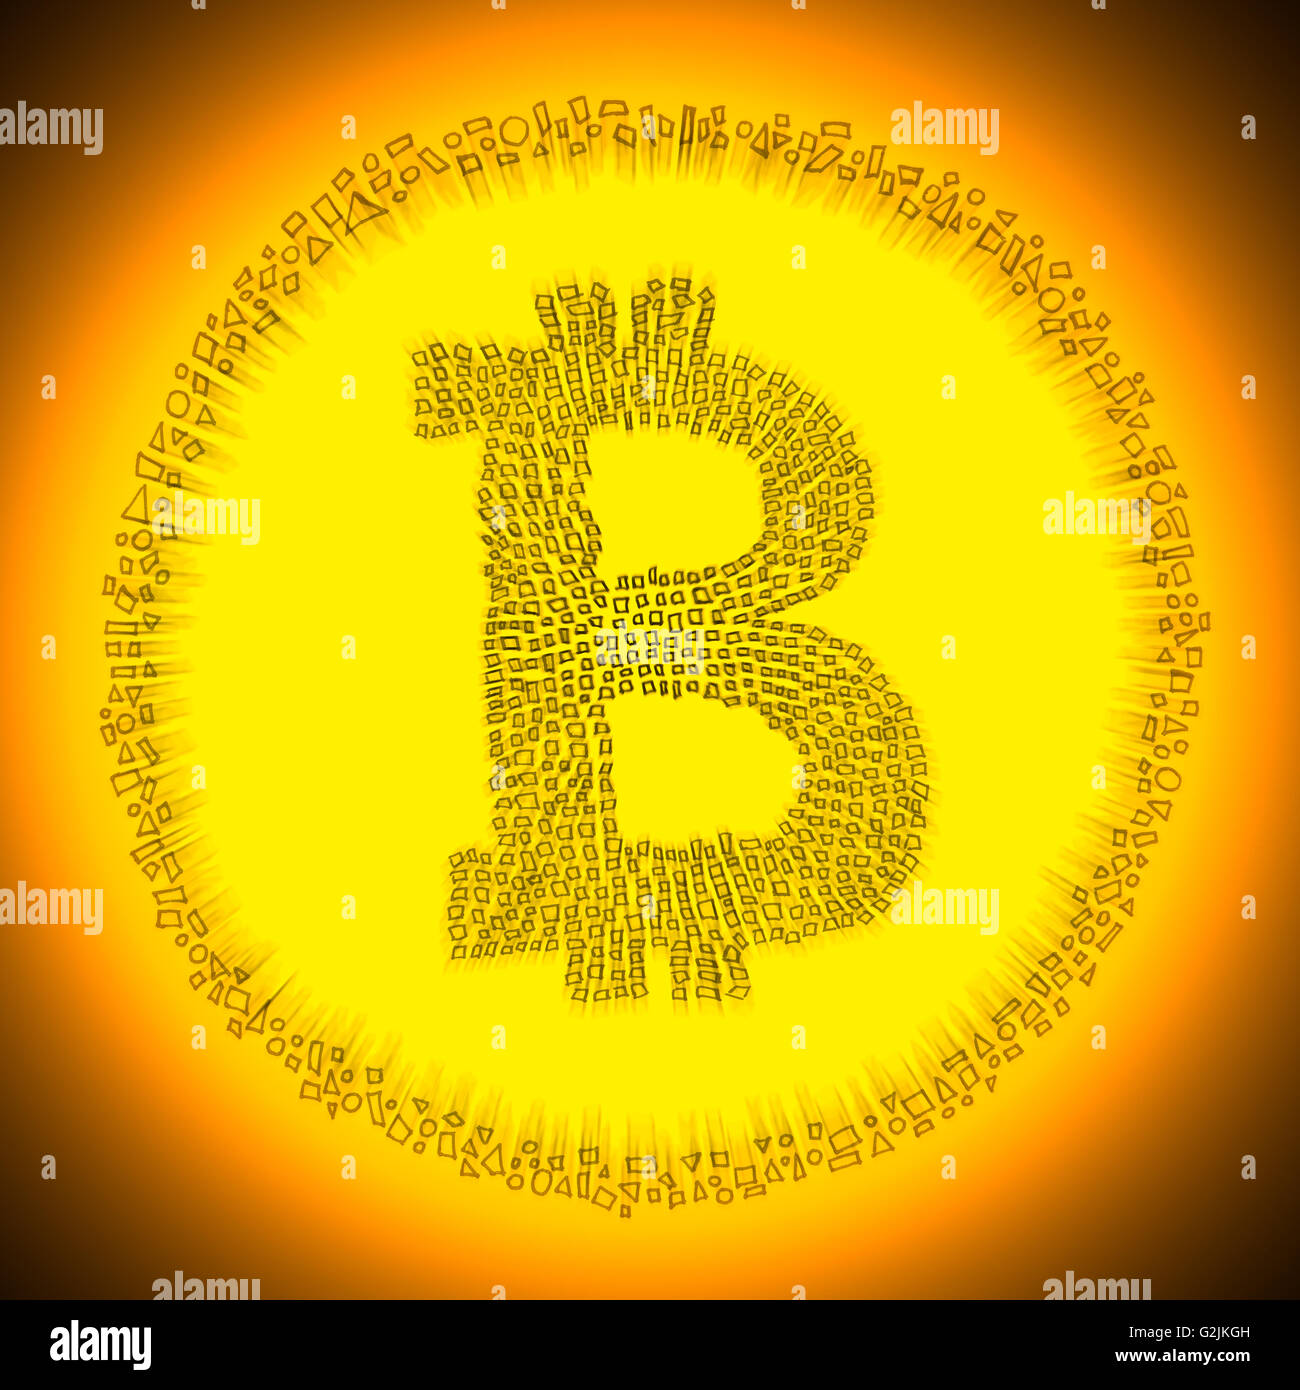 Golden radiant digital Blockchain Bitcoin technology logo. Illustration of an electronic decentralized crypto currency - Stock Image